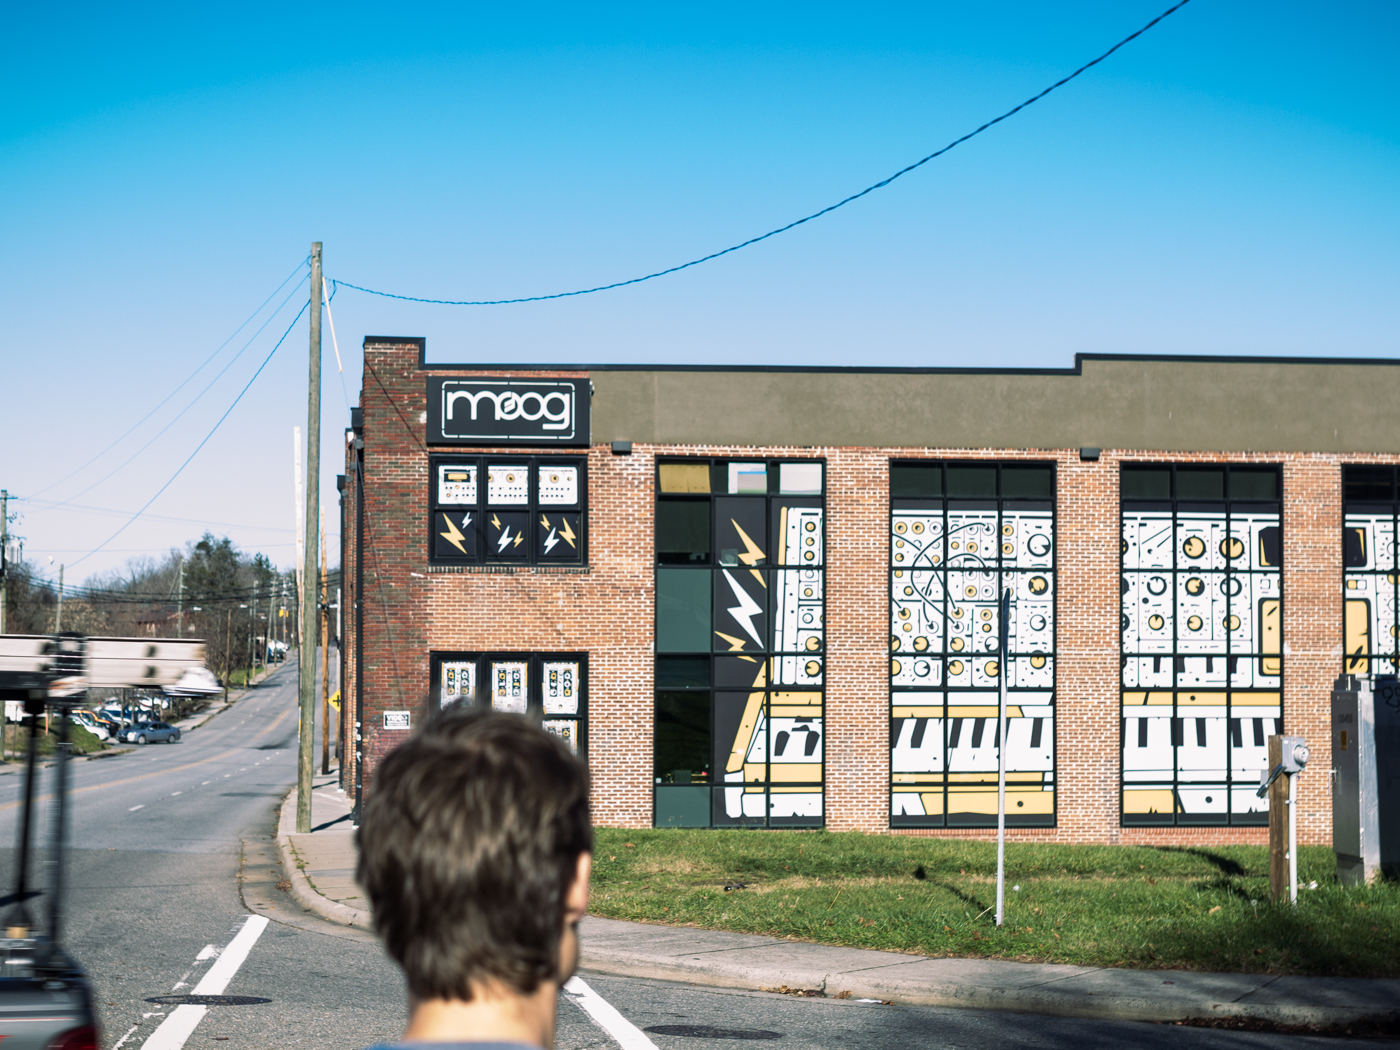 The world famous synthesizer manufacturer, Moog, is based out of Asheville.